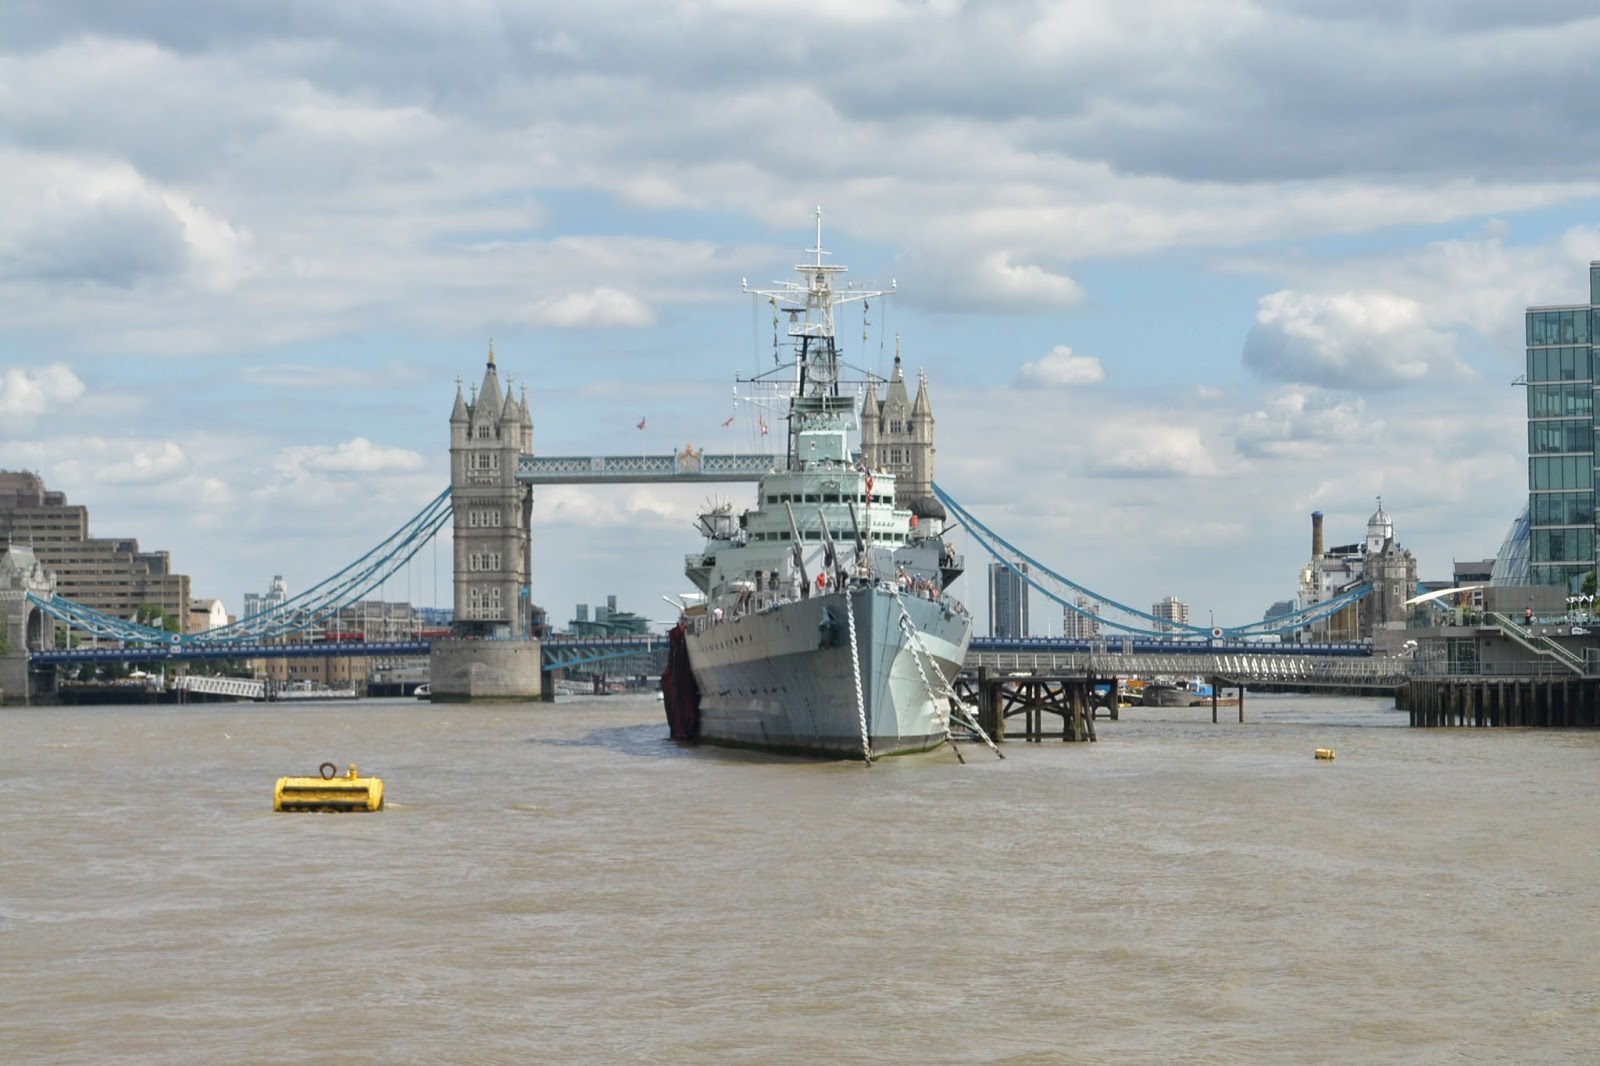 HMS Belfast, River Thames, UK